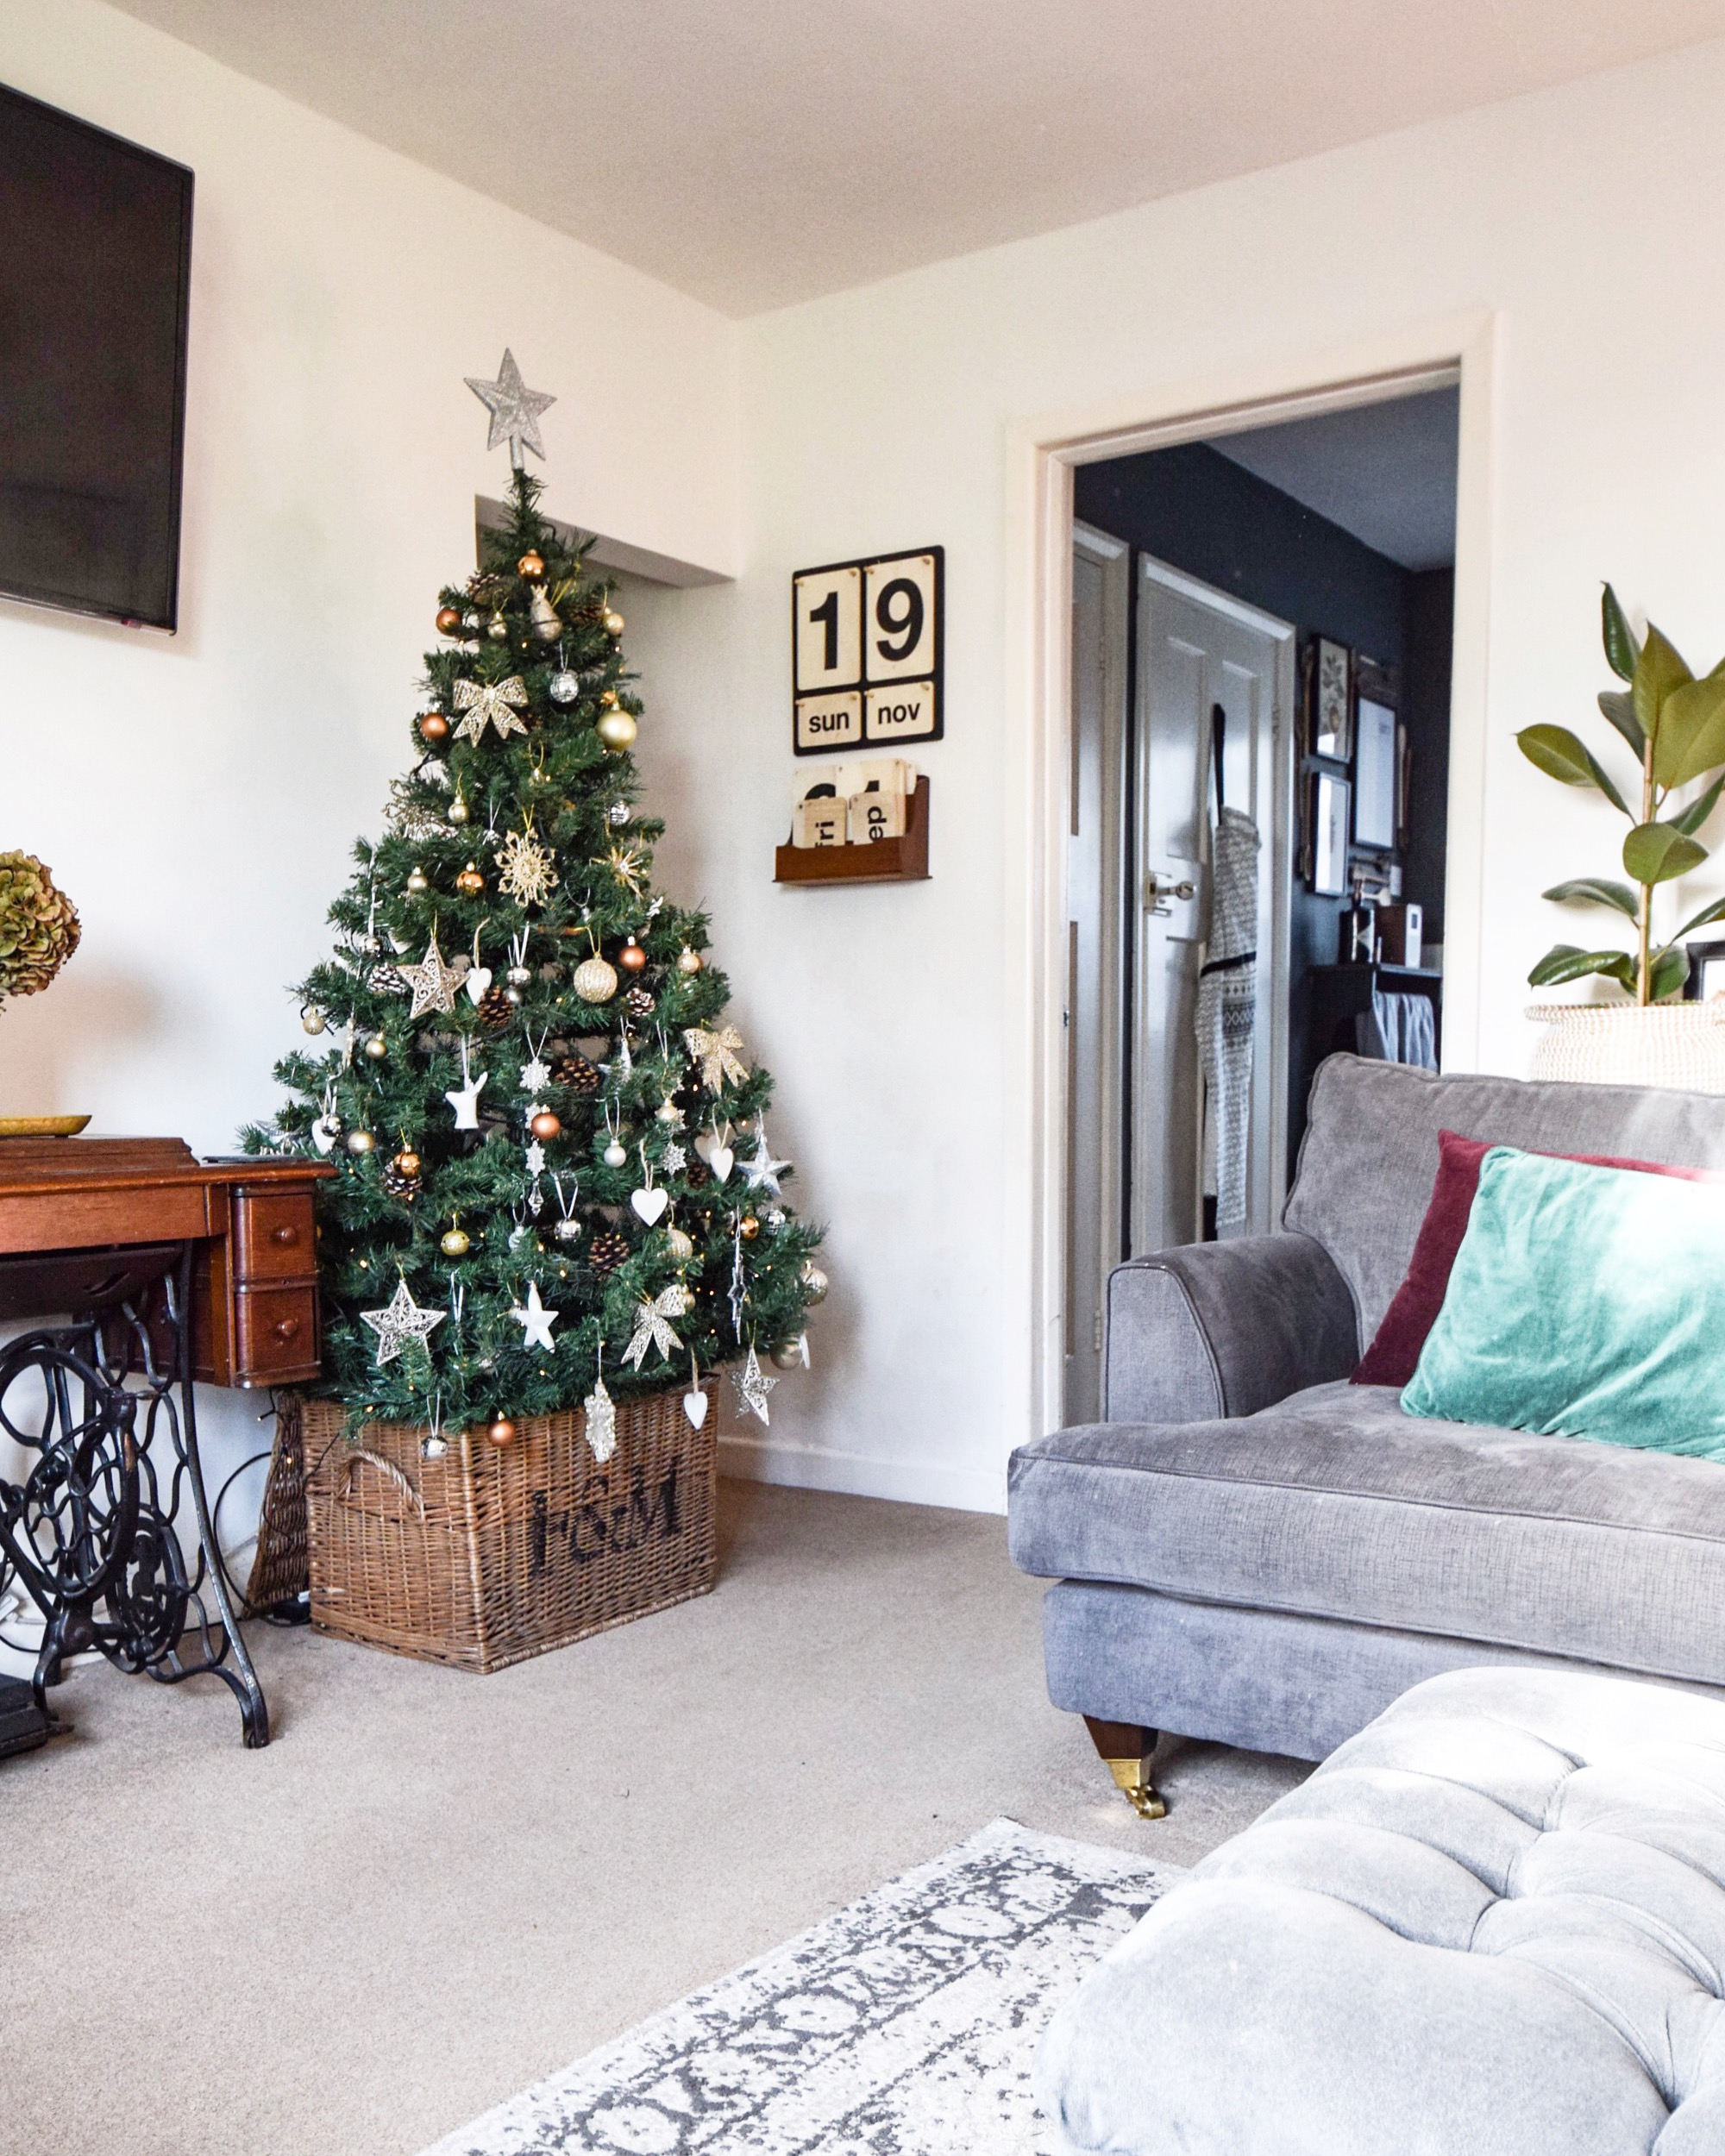 wayfair have so many christmas trees to chose from different heights different colours ones with lights ones with snow the choice really is yours - Wayfair Christmas